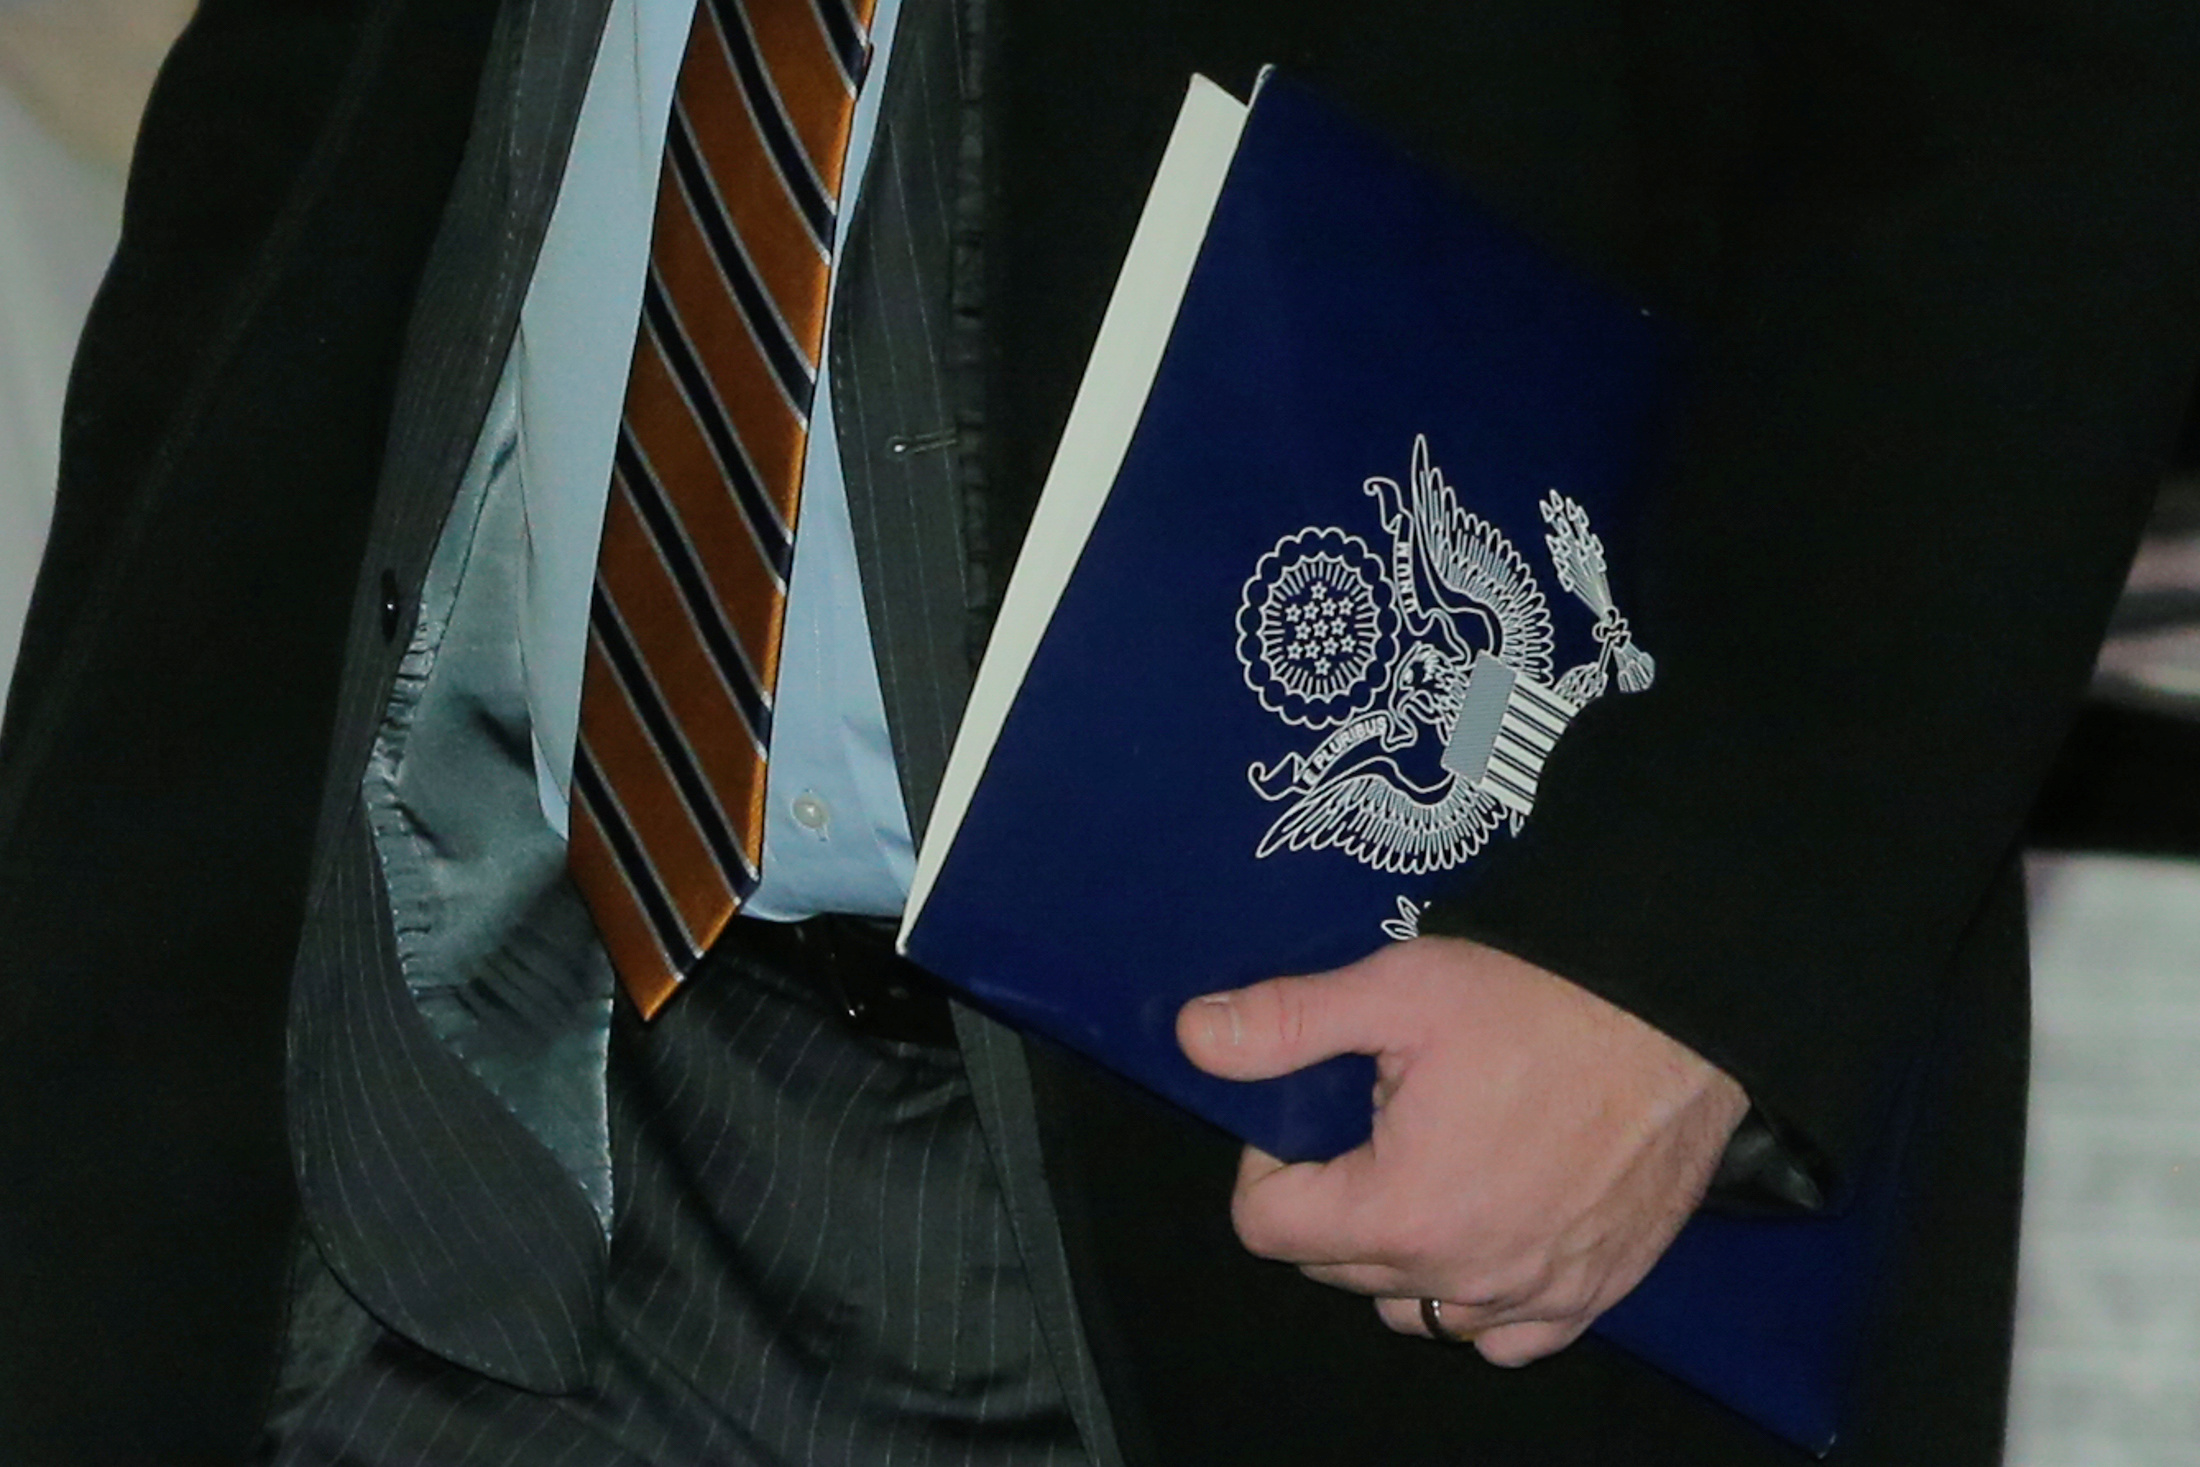 A member of the U.S. trade delegation to China, carries a folder as he leaves a hotel in Beijing, China January 7, 2019.